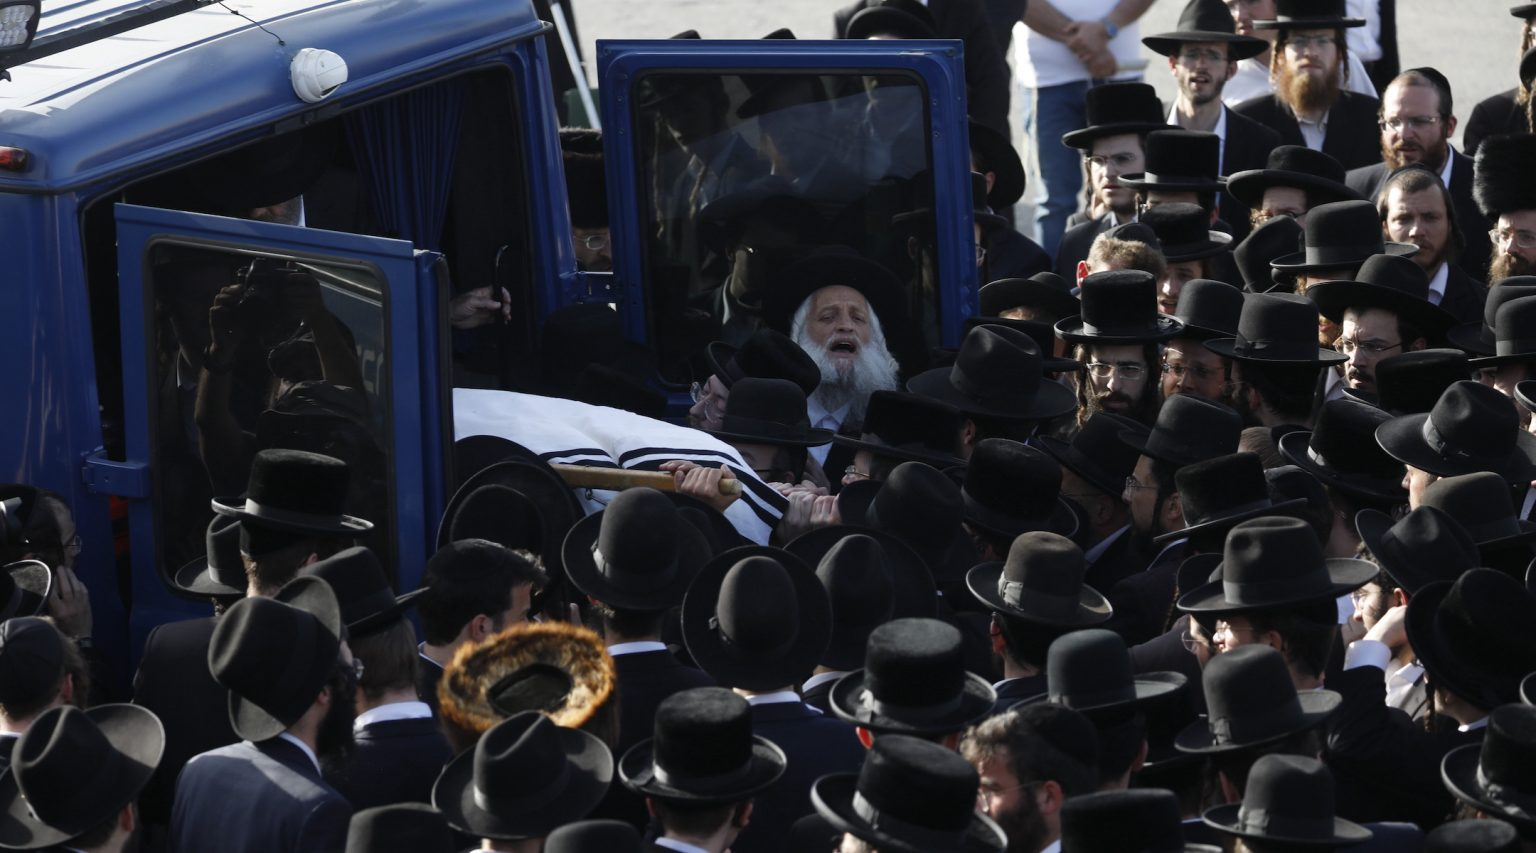 Hundreds of Orthodox Jews mourn at the funeral of Yehuda Lev Lubin, one of 45 victims from the Mount Meron Lag B'Omer stampede, April 30, 2021. (Photo/JTA-Olivier Fitoussi-Flash90)